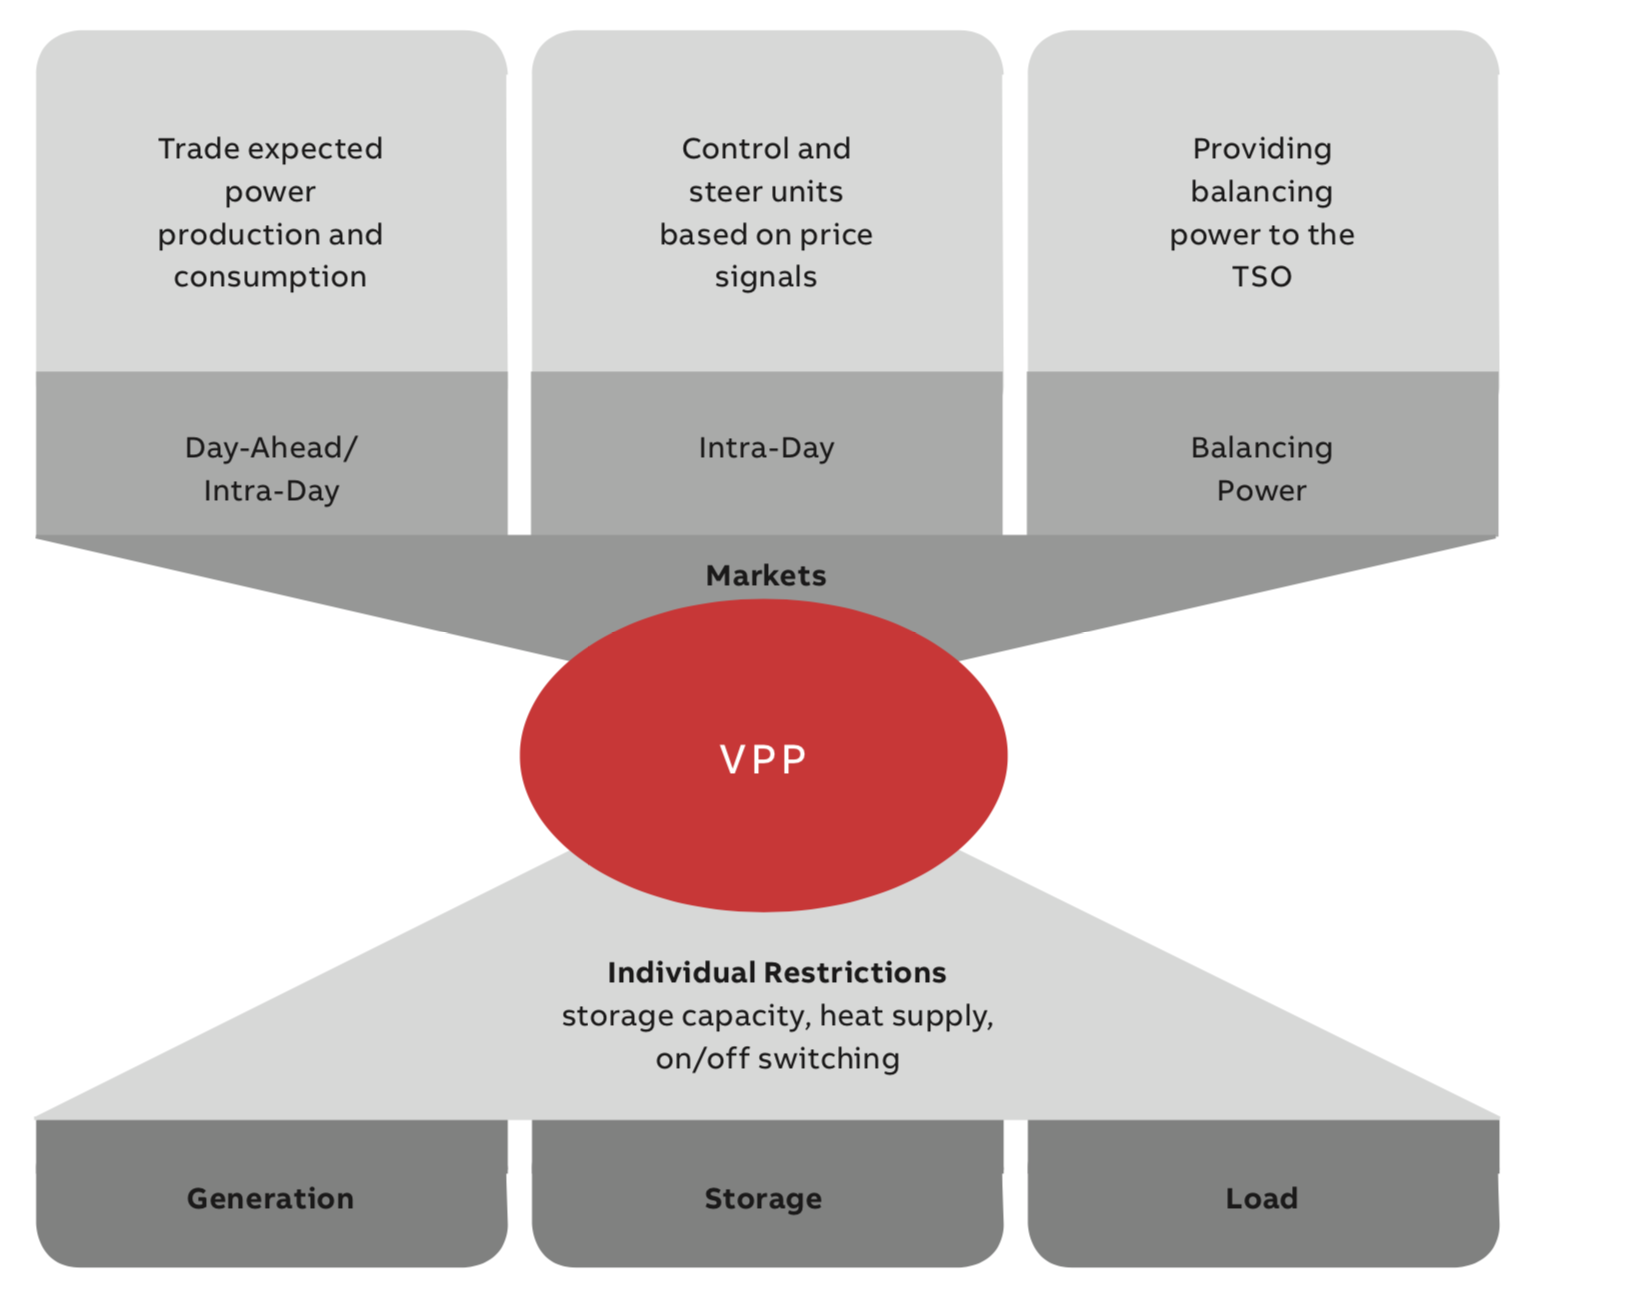 Business models and market participation for virtual power plants